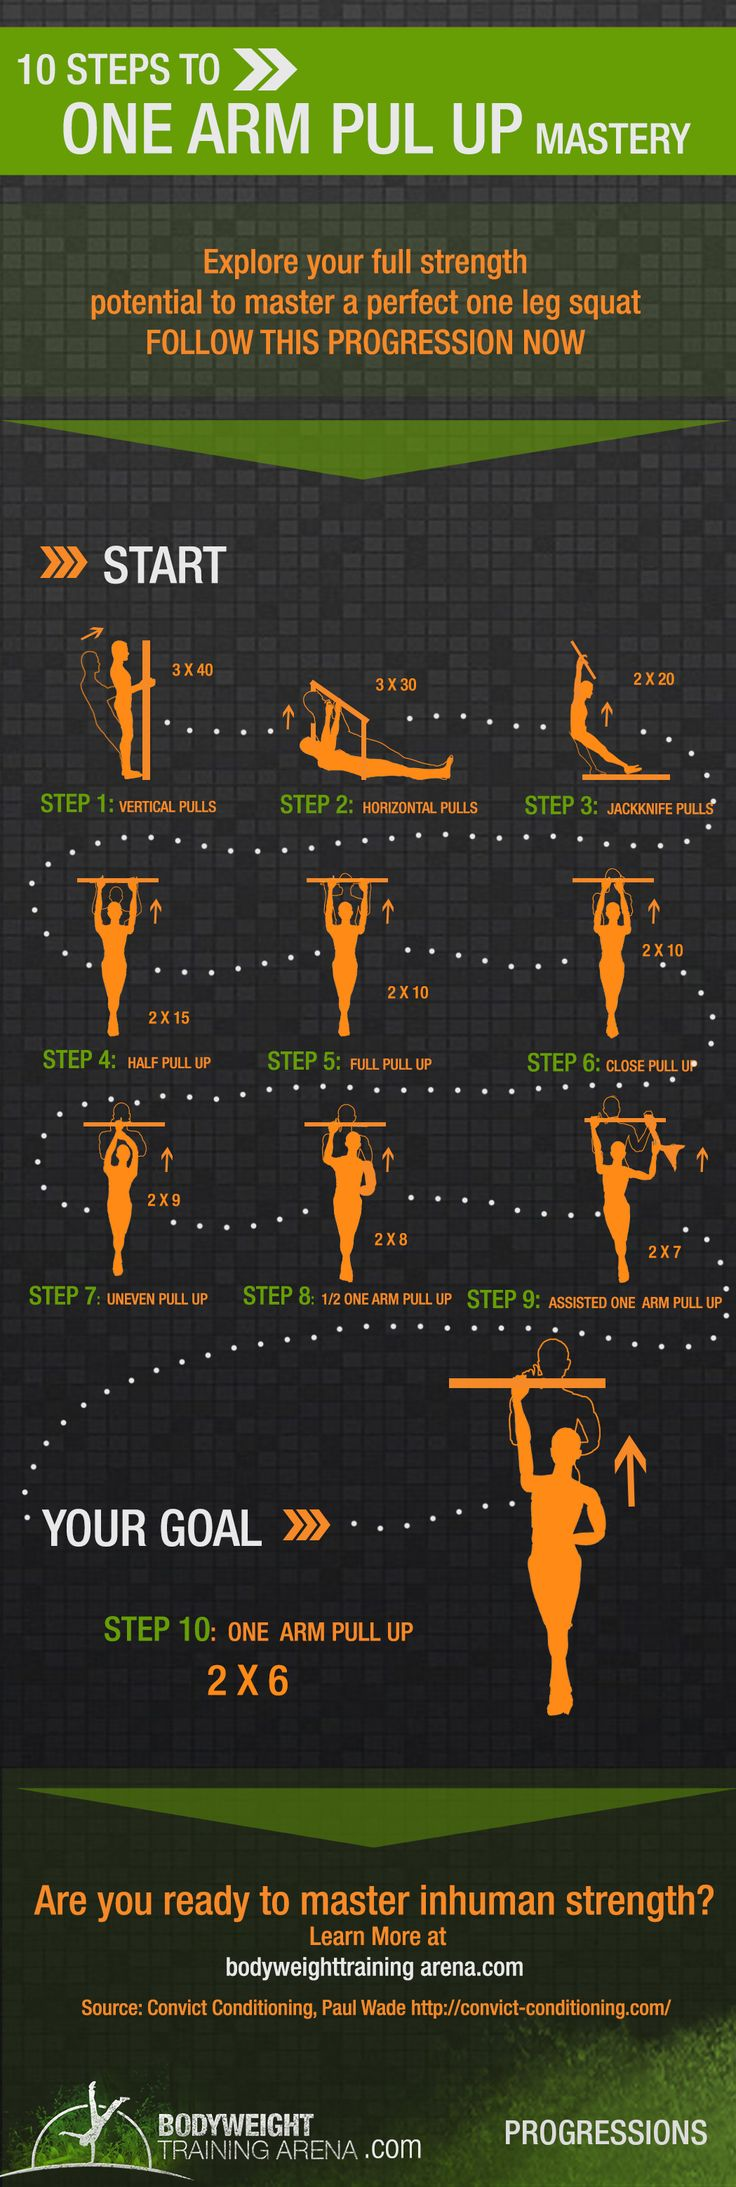 Pull Ups progression visualized and explained.